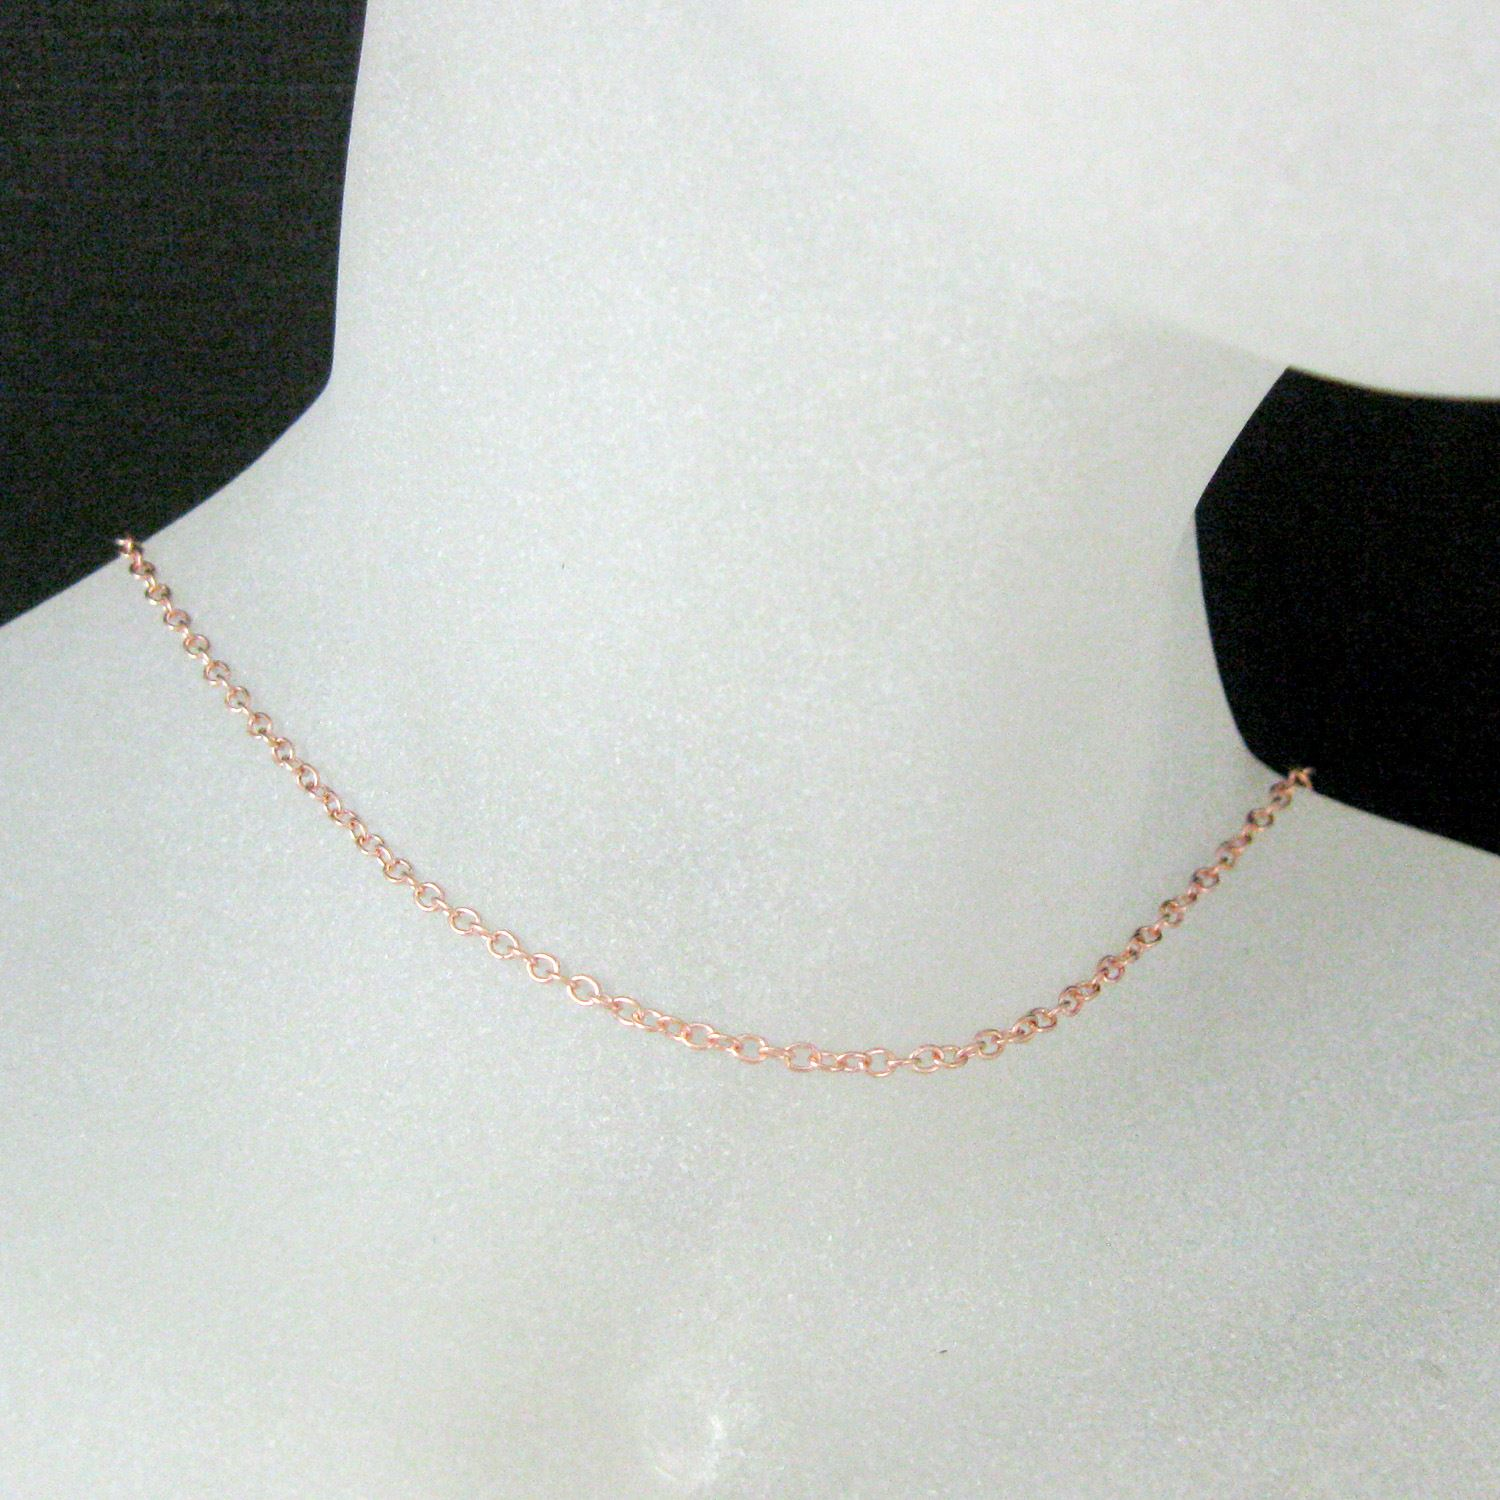 Rose Gold Necklace, Gold Plated Vermeil Sterling Silver Necklace Chain - Long Necklace- 2mm Strong Cable Oval - All Sizes